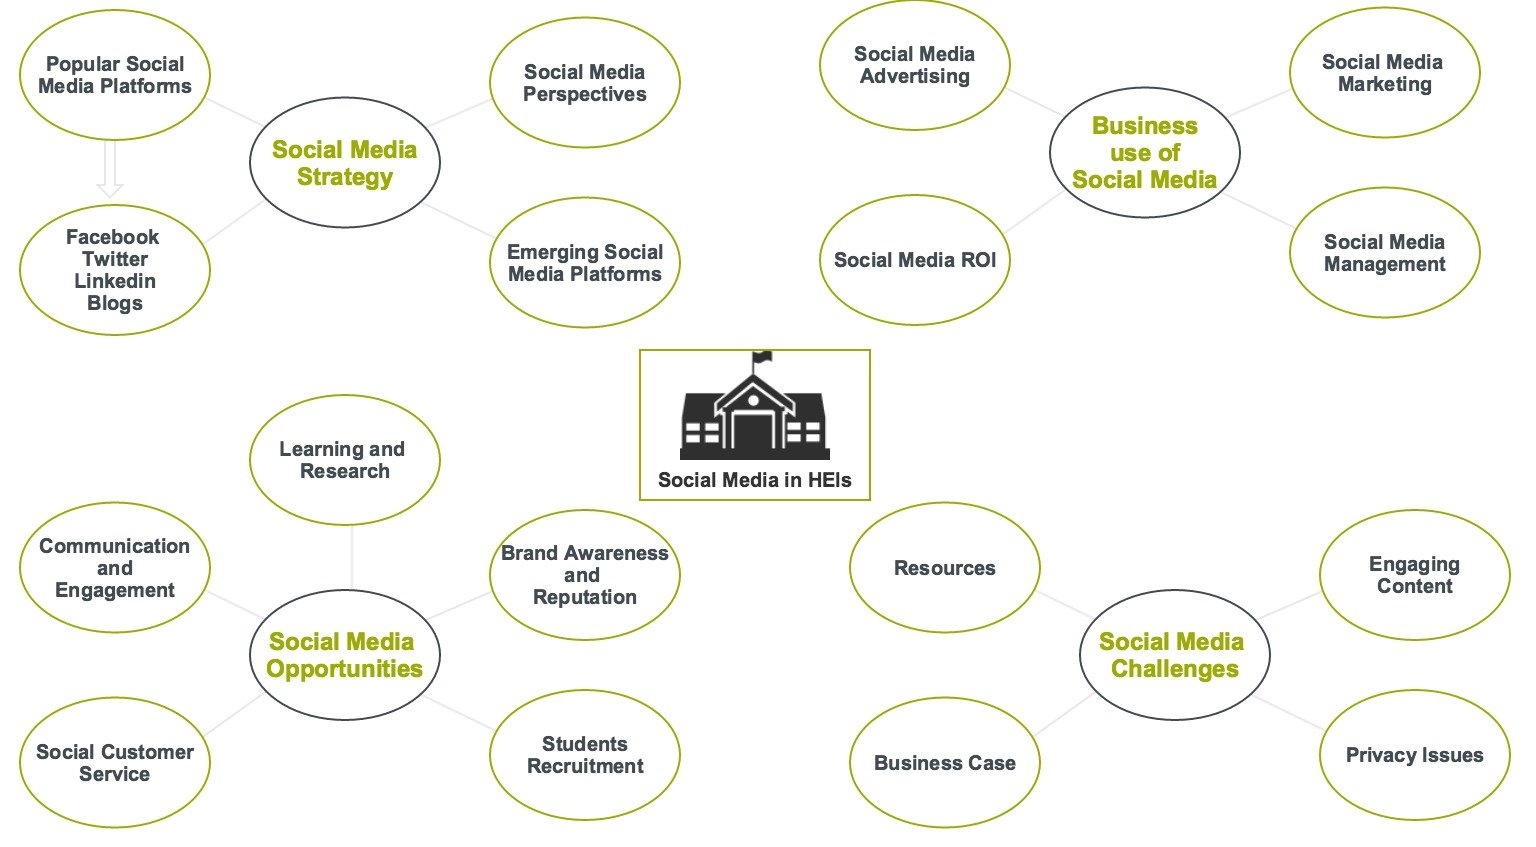 Social Media for Business in HEIs all Themes